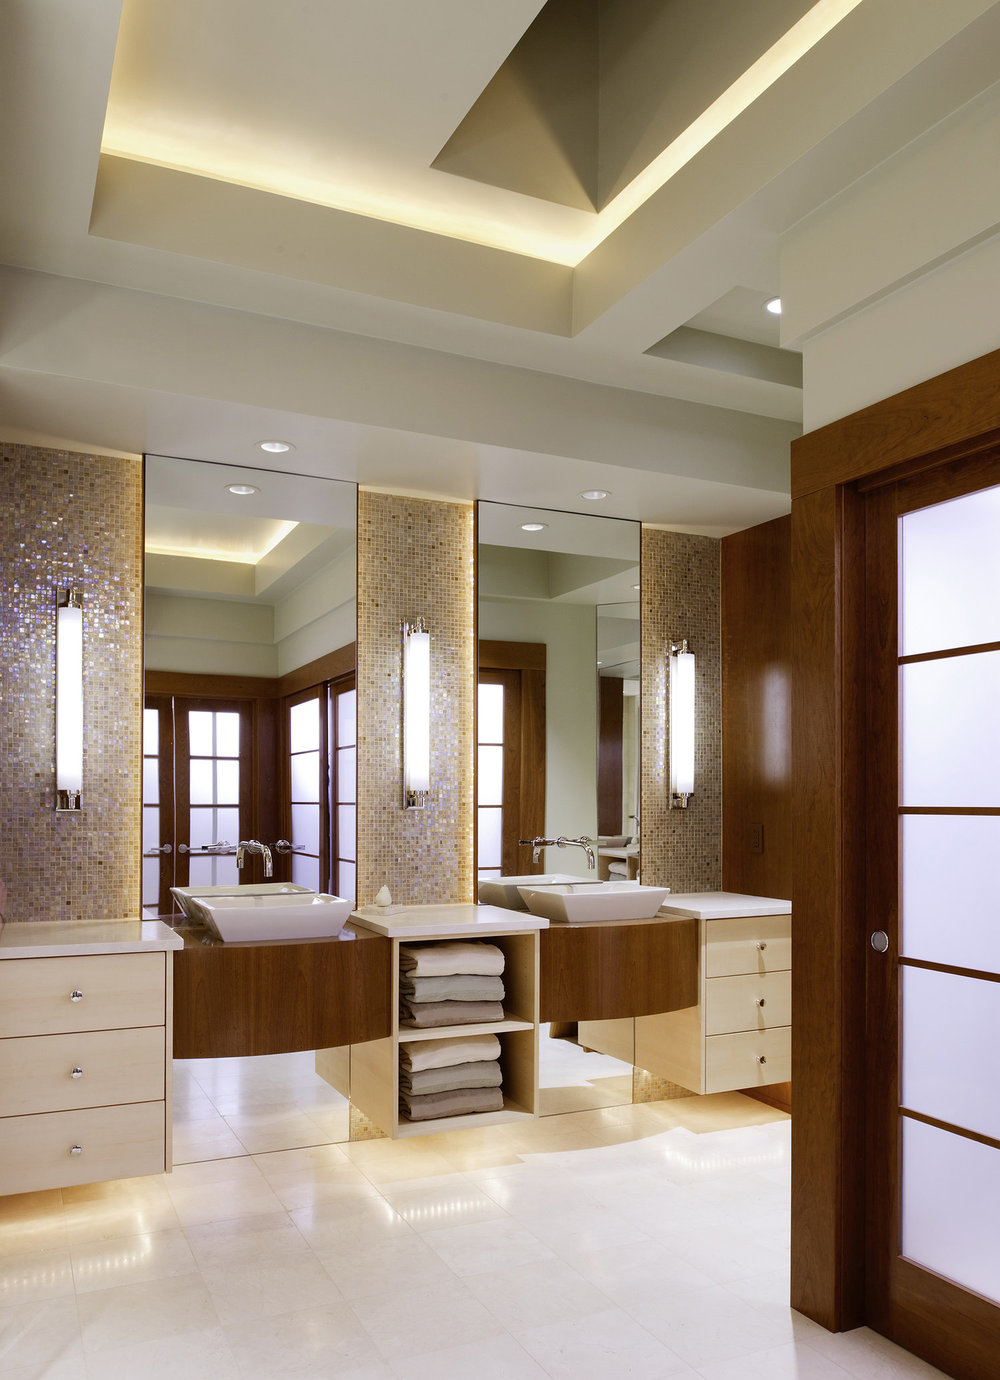 kitchen_bath_concepts_wholehome5_4.jpg